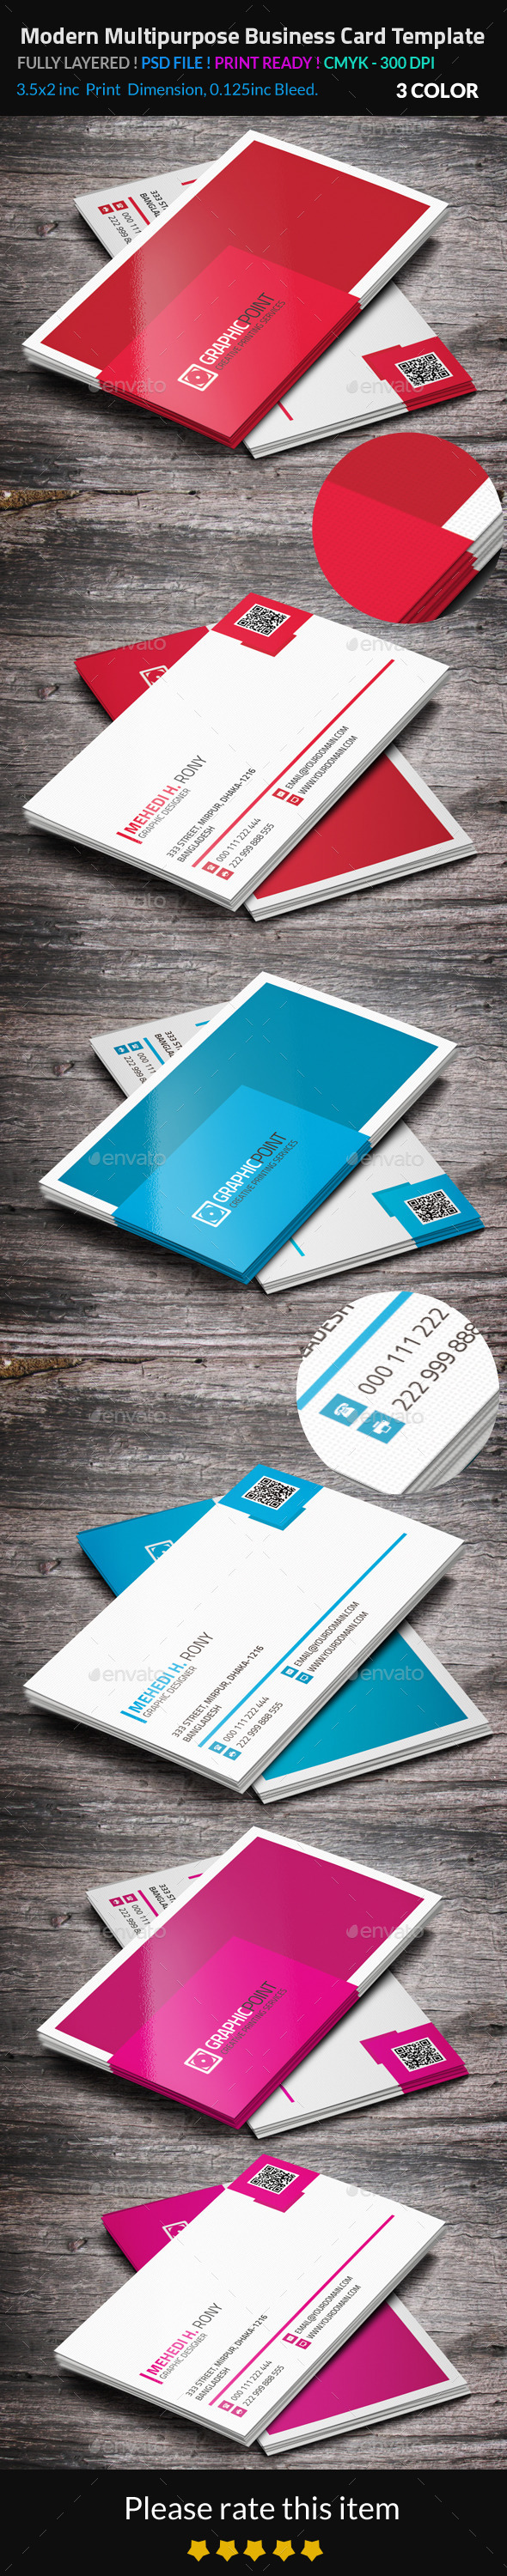 Modern Multipurpose Business Card Template